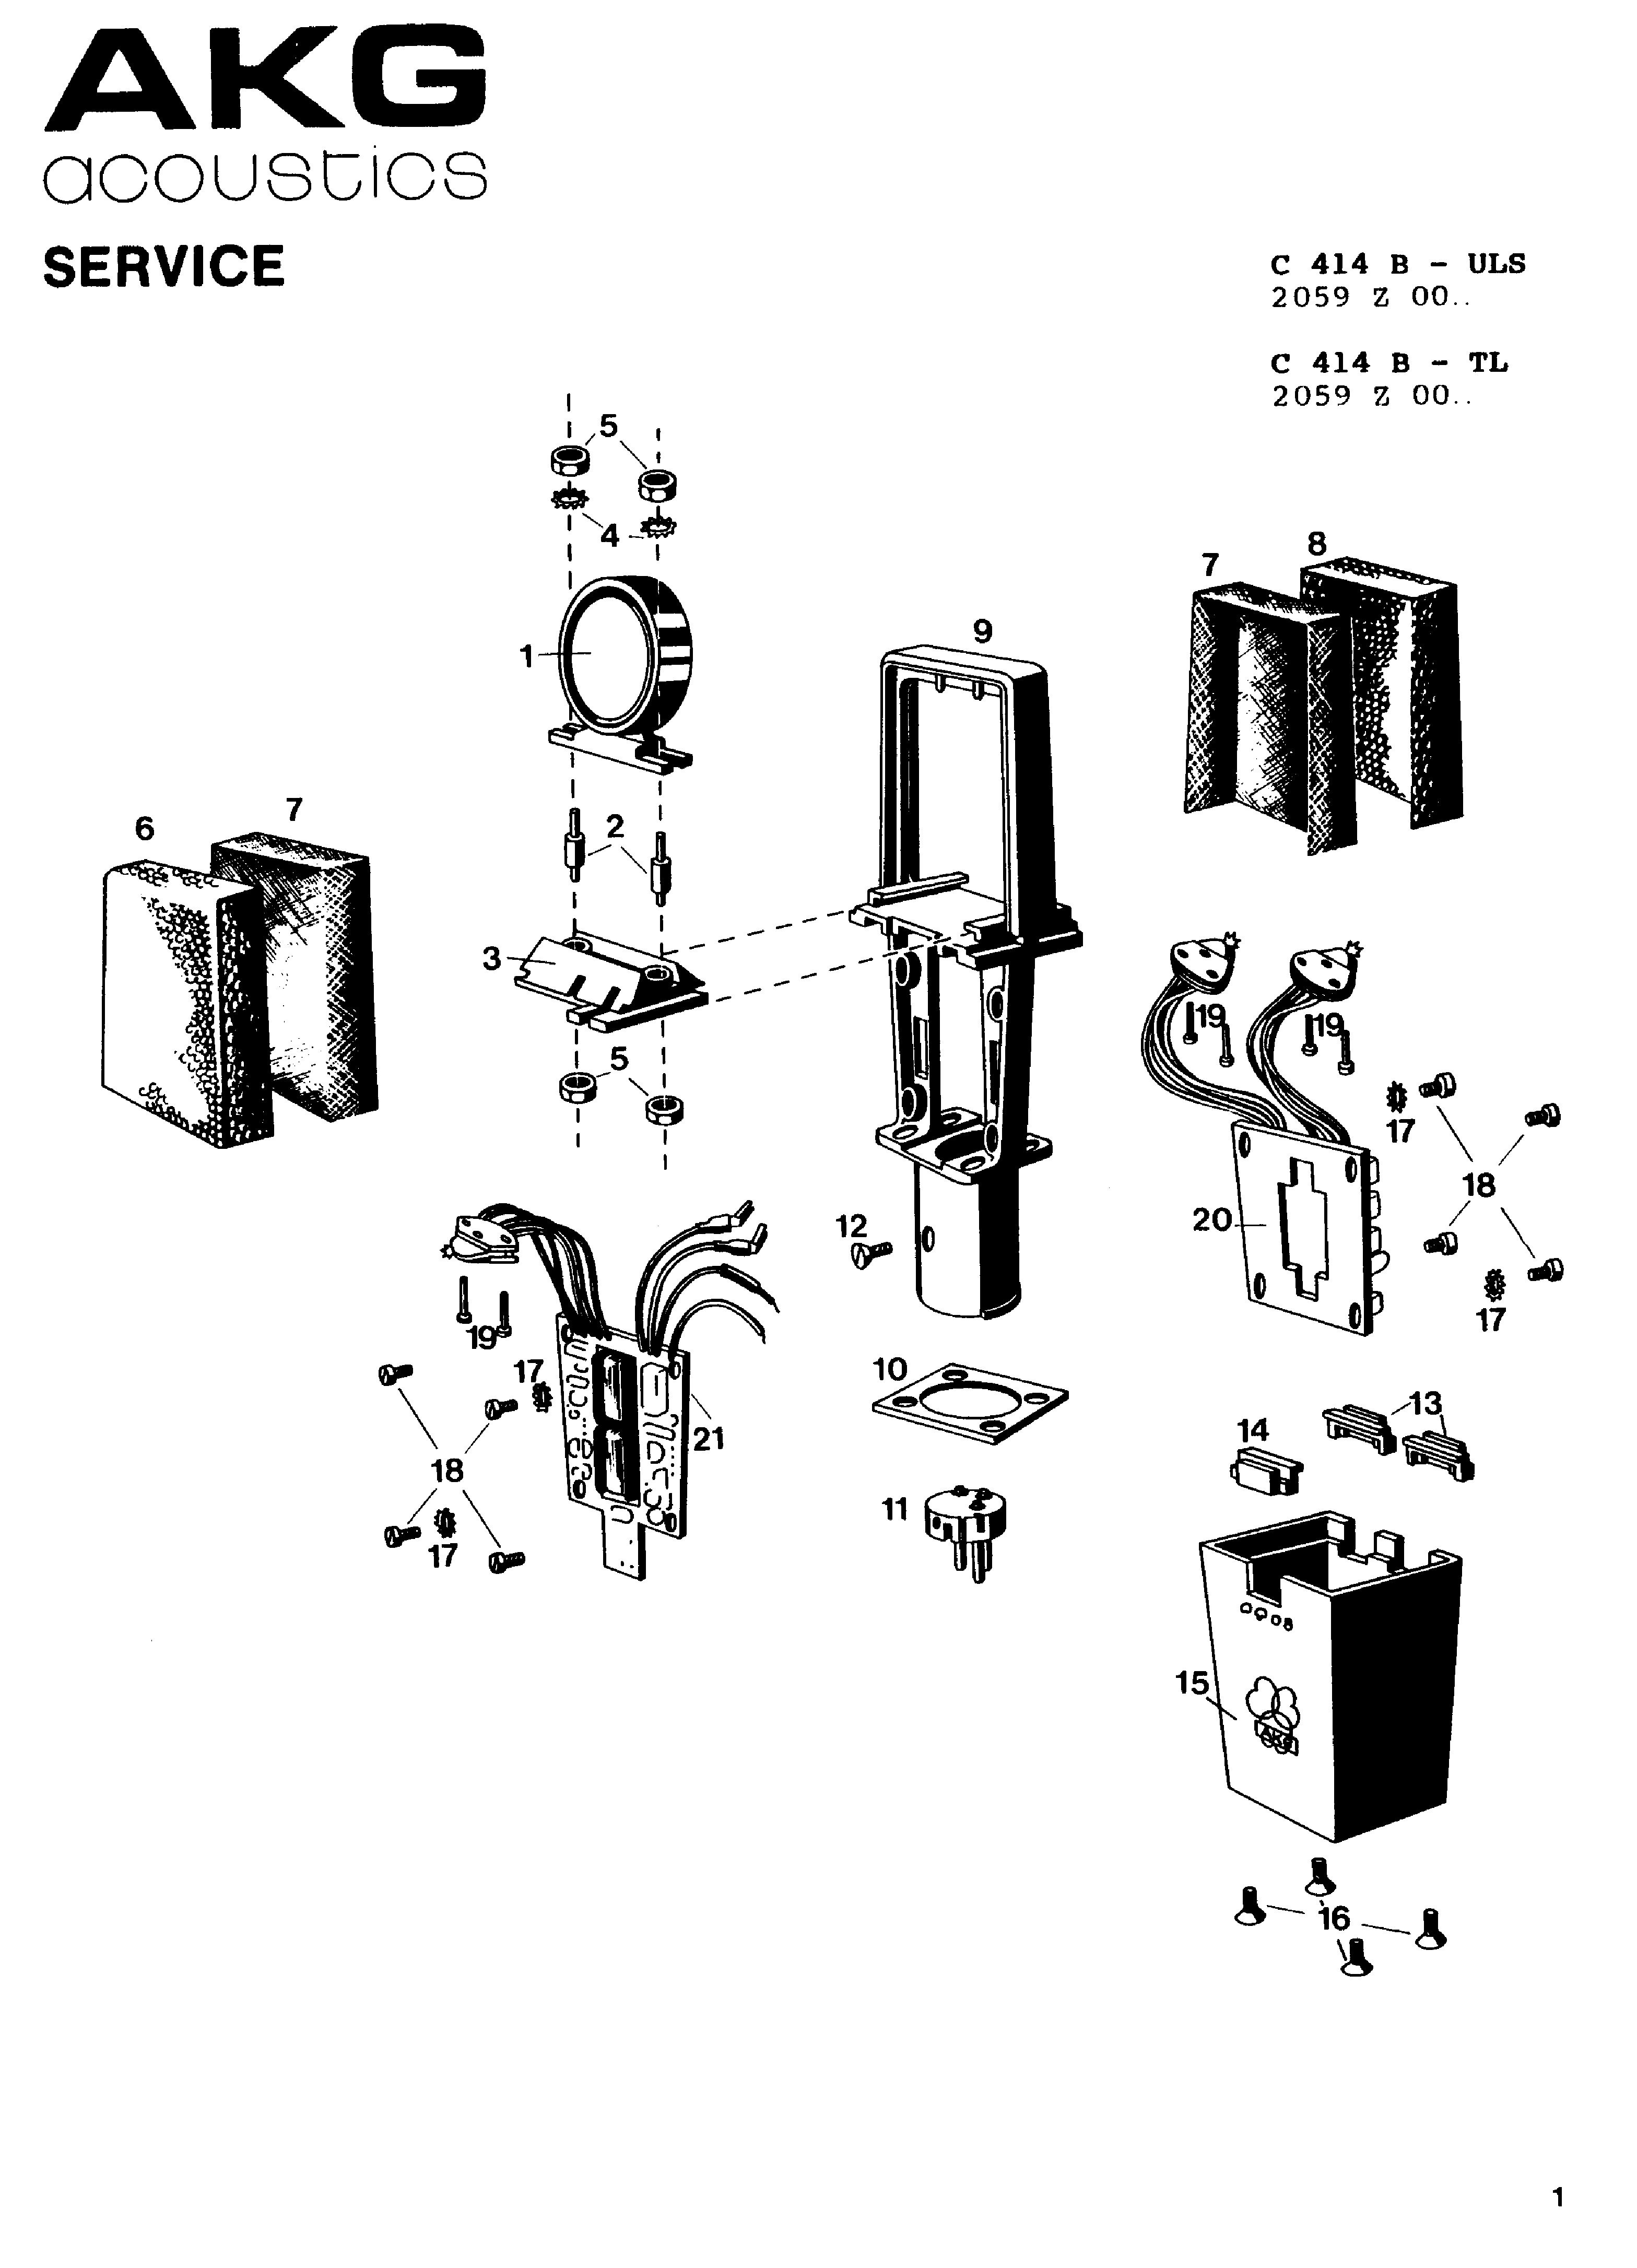 301679d1342899965 broken c414 pattern selector switch akg c414b_uls_sm.pdf_1 broken c414 pattern selector switch gearslutz pro audio community Basic Electrical Wiring Diagrams at crackthecode.co